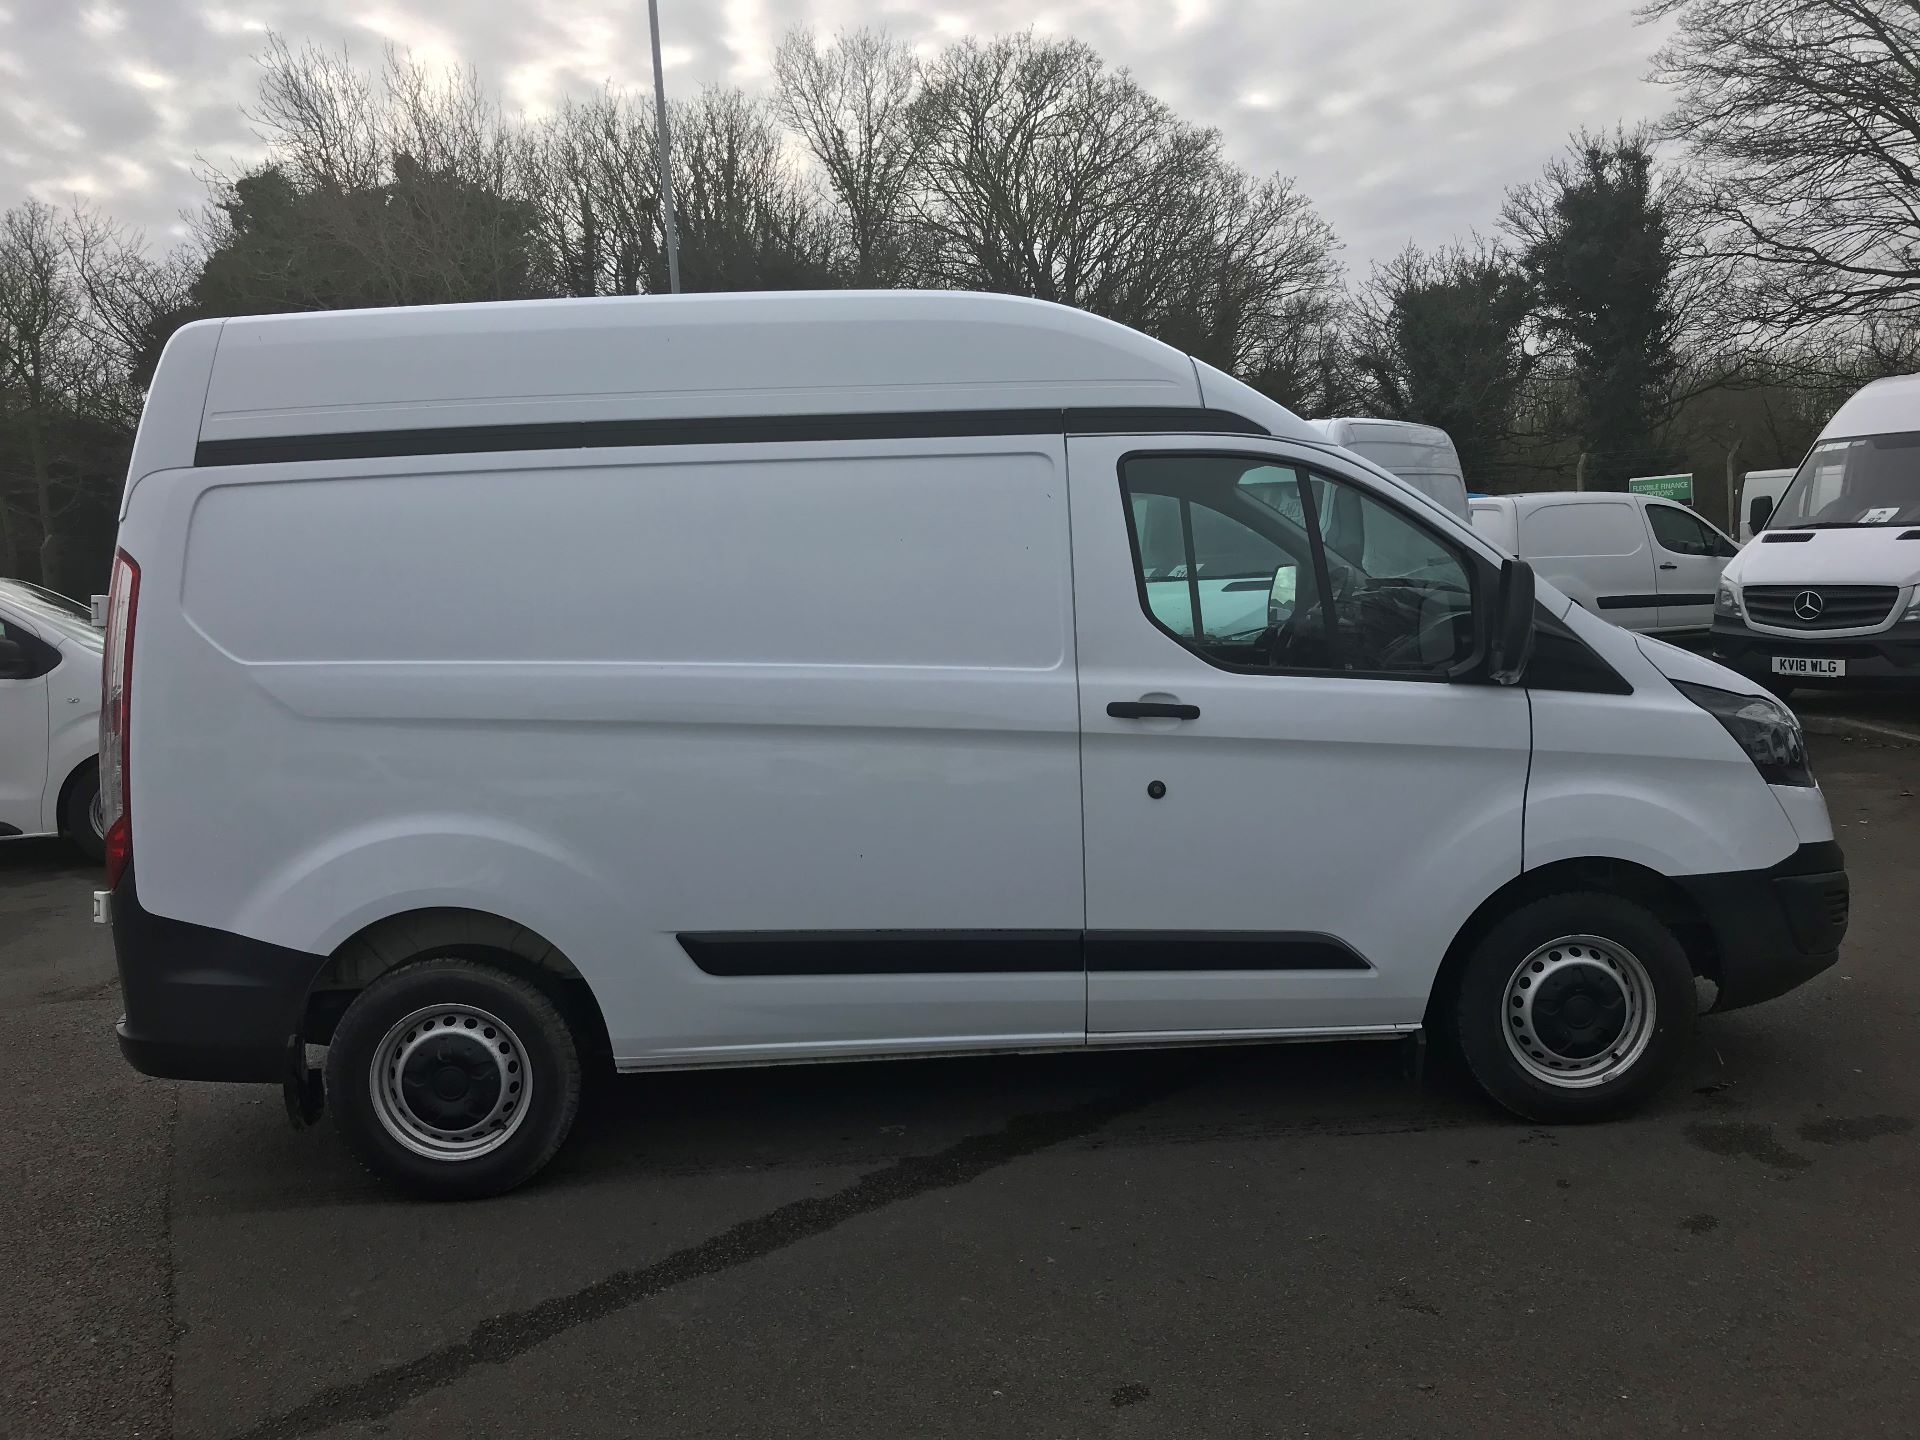 2016 Ford Transit Custom 2.0 TDCI 130PS HIGH ROOF VAN EURO 6 (WM66XJL) Image 10